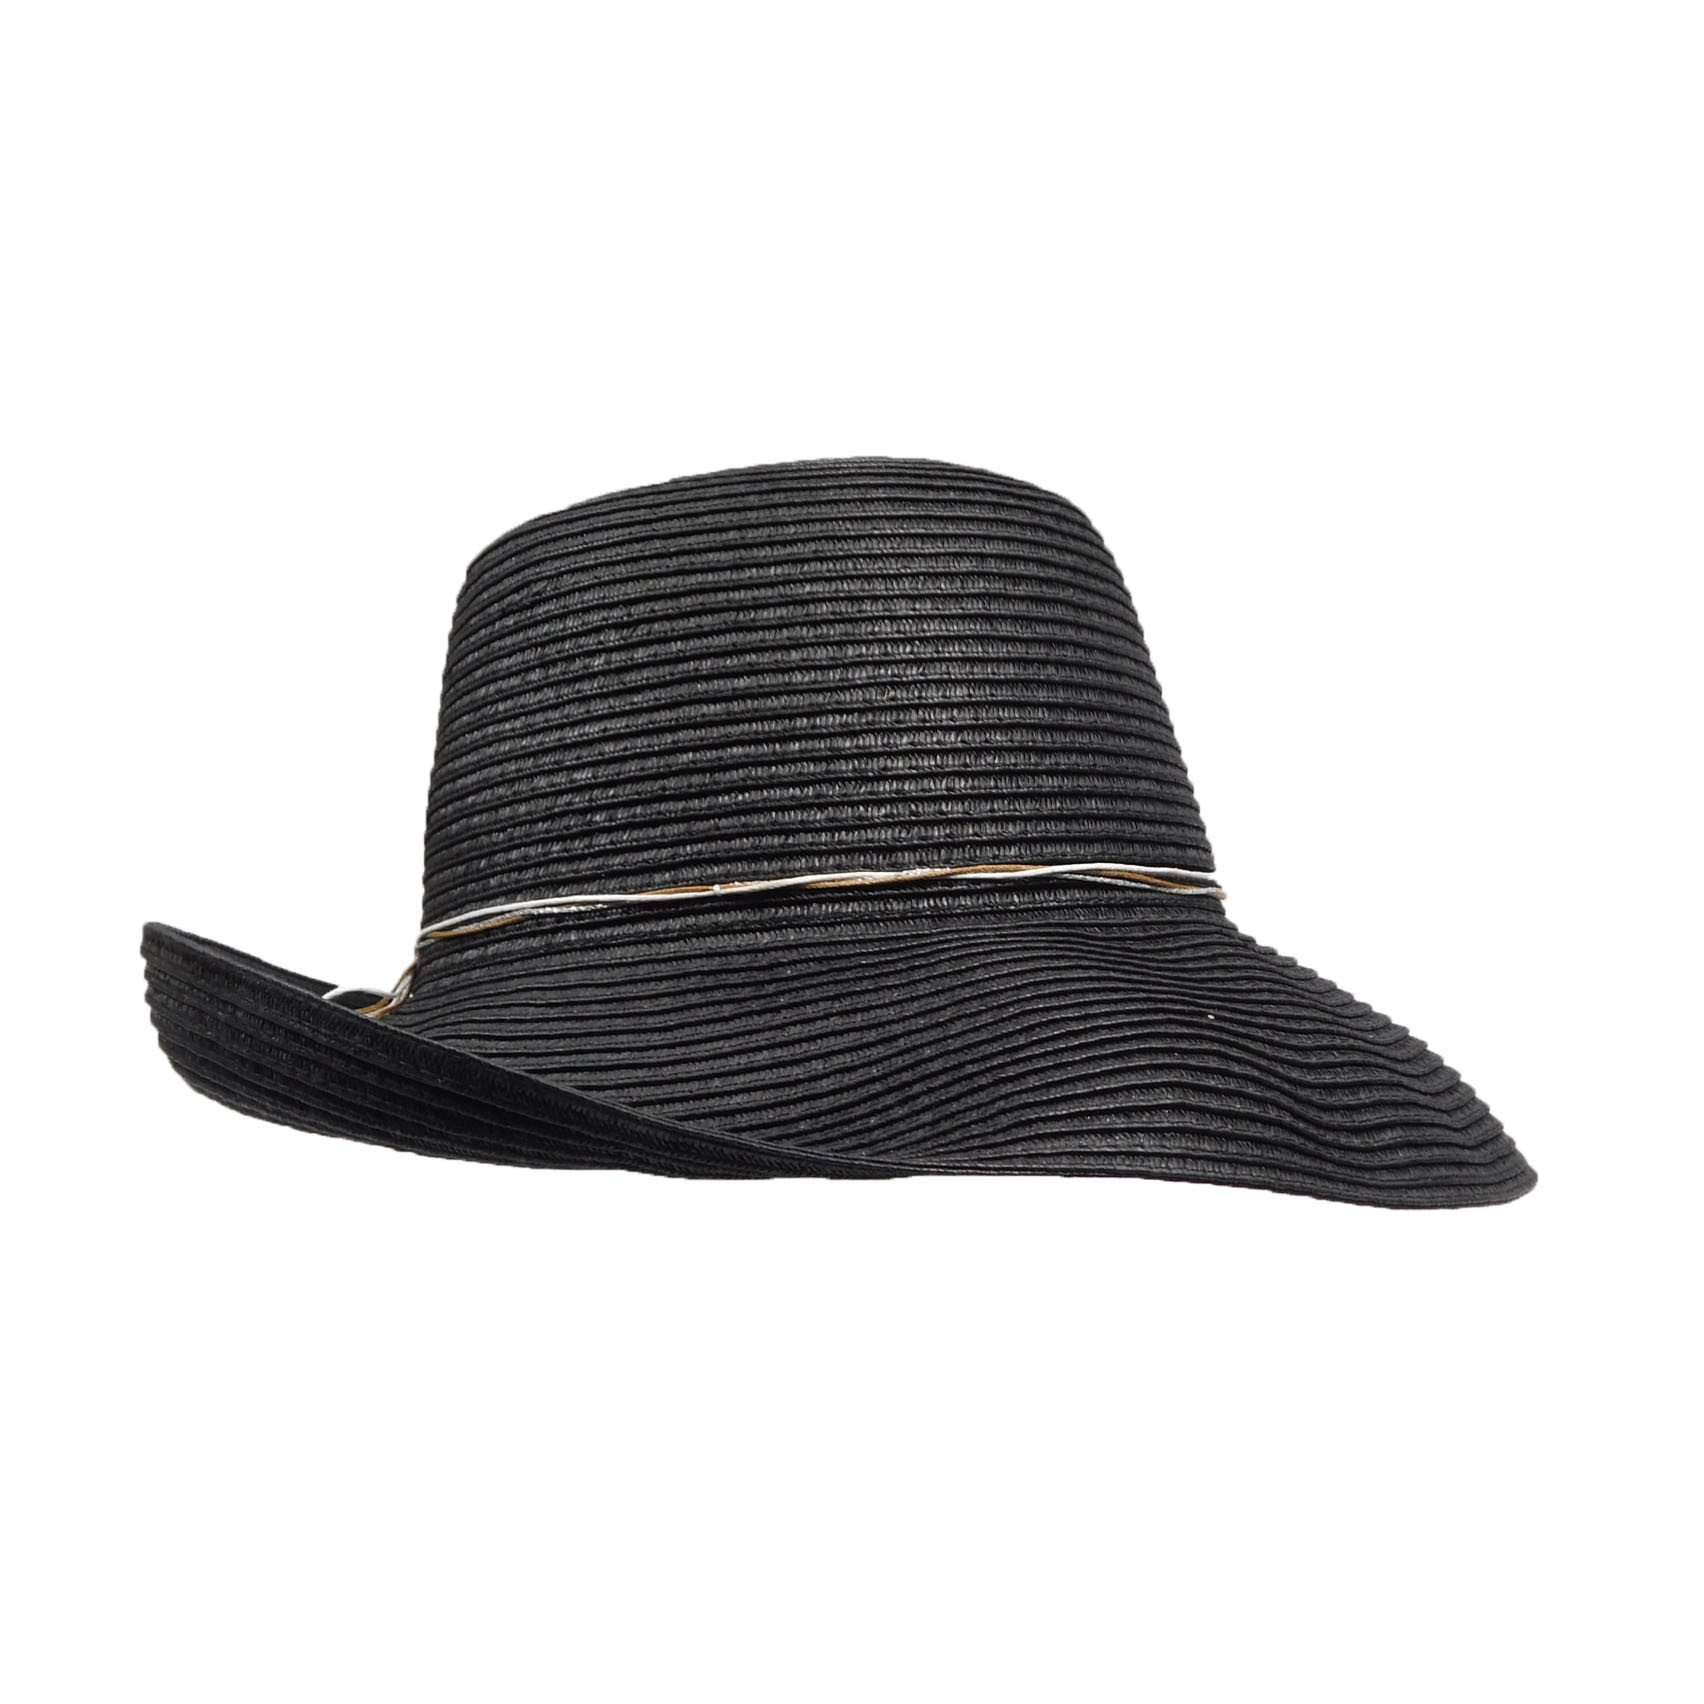 Scala Pronto Black Kettle Brim Hat - SetarTrading Hats